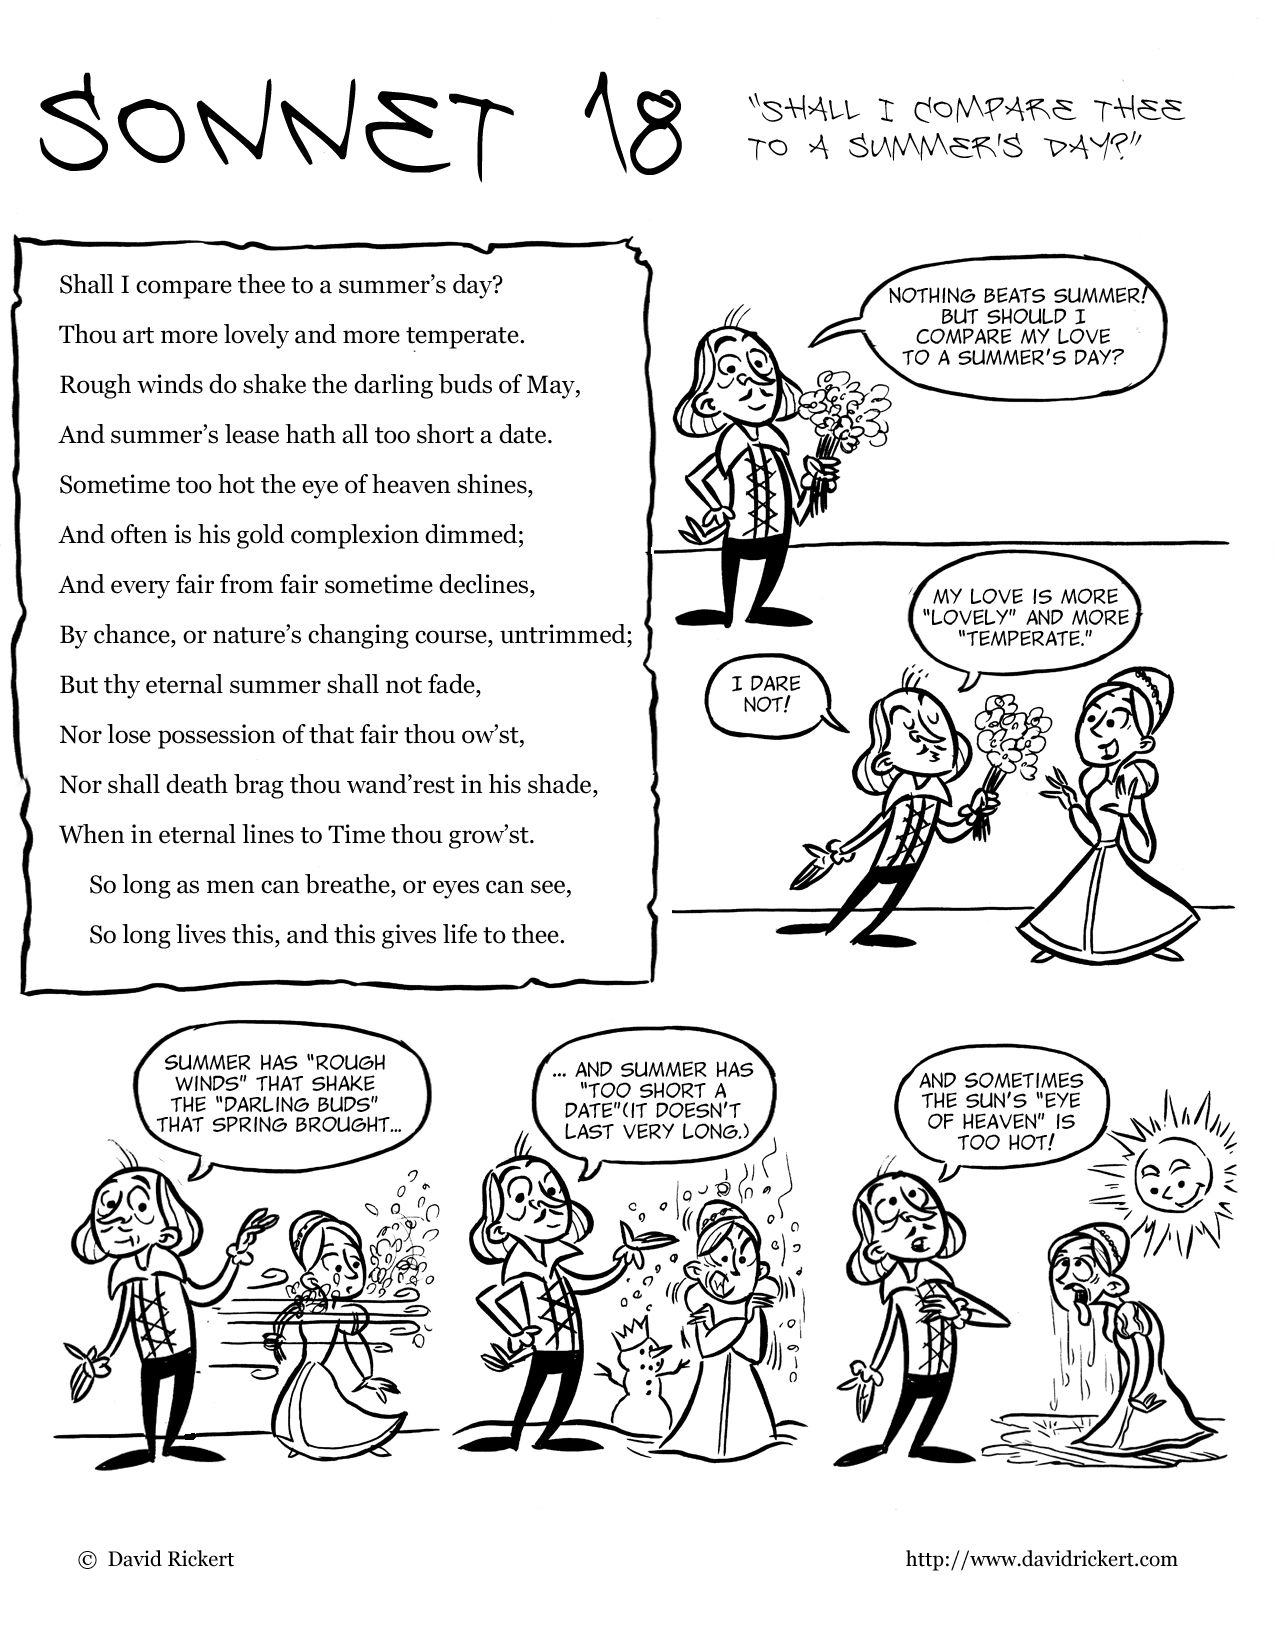 shakespeare comics sonnet 18 david rickert the packet contains a cartoon that explains the poem as well as comprehension activities and lessons on the sonnet form check it out at my store